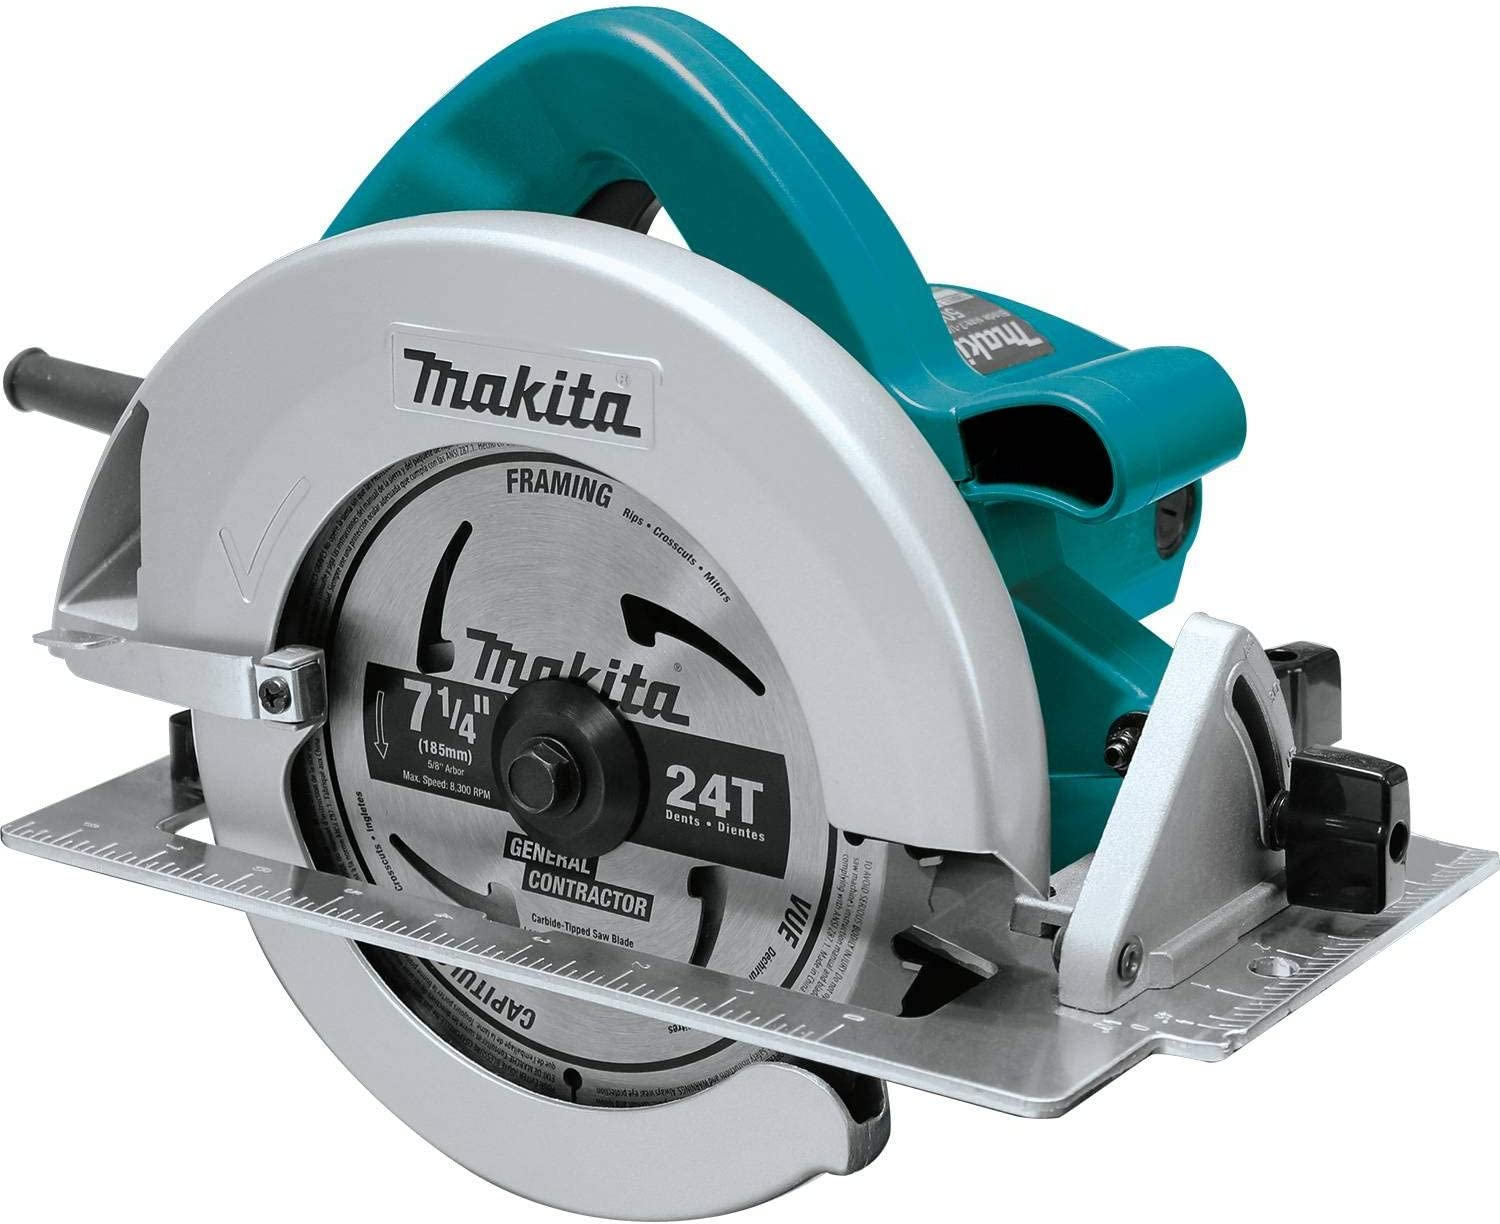 Makita 5007f Circular Saw Power Circular Saws Amazon Com